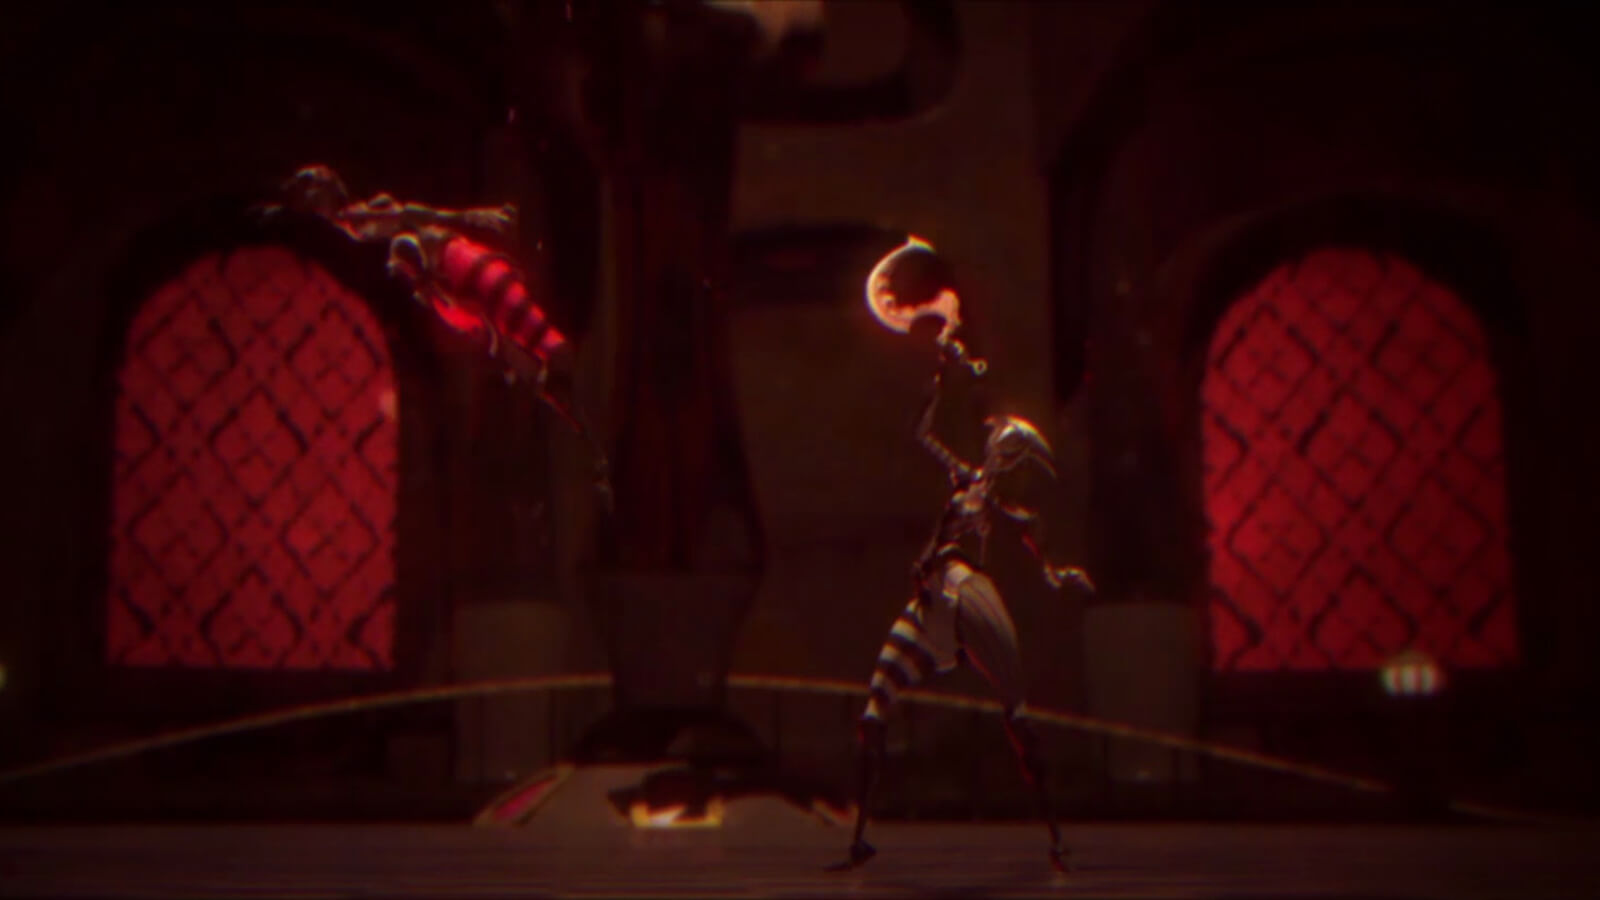 Two figures battle in a dimly lit arena room. One raises a melee weapon while the other flies through the air backward.